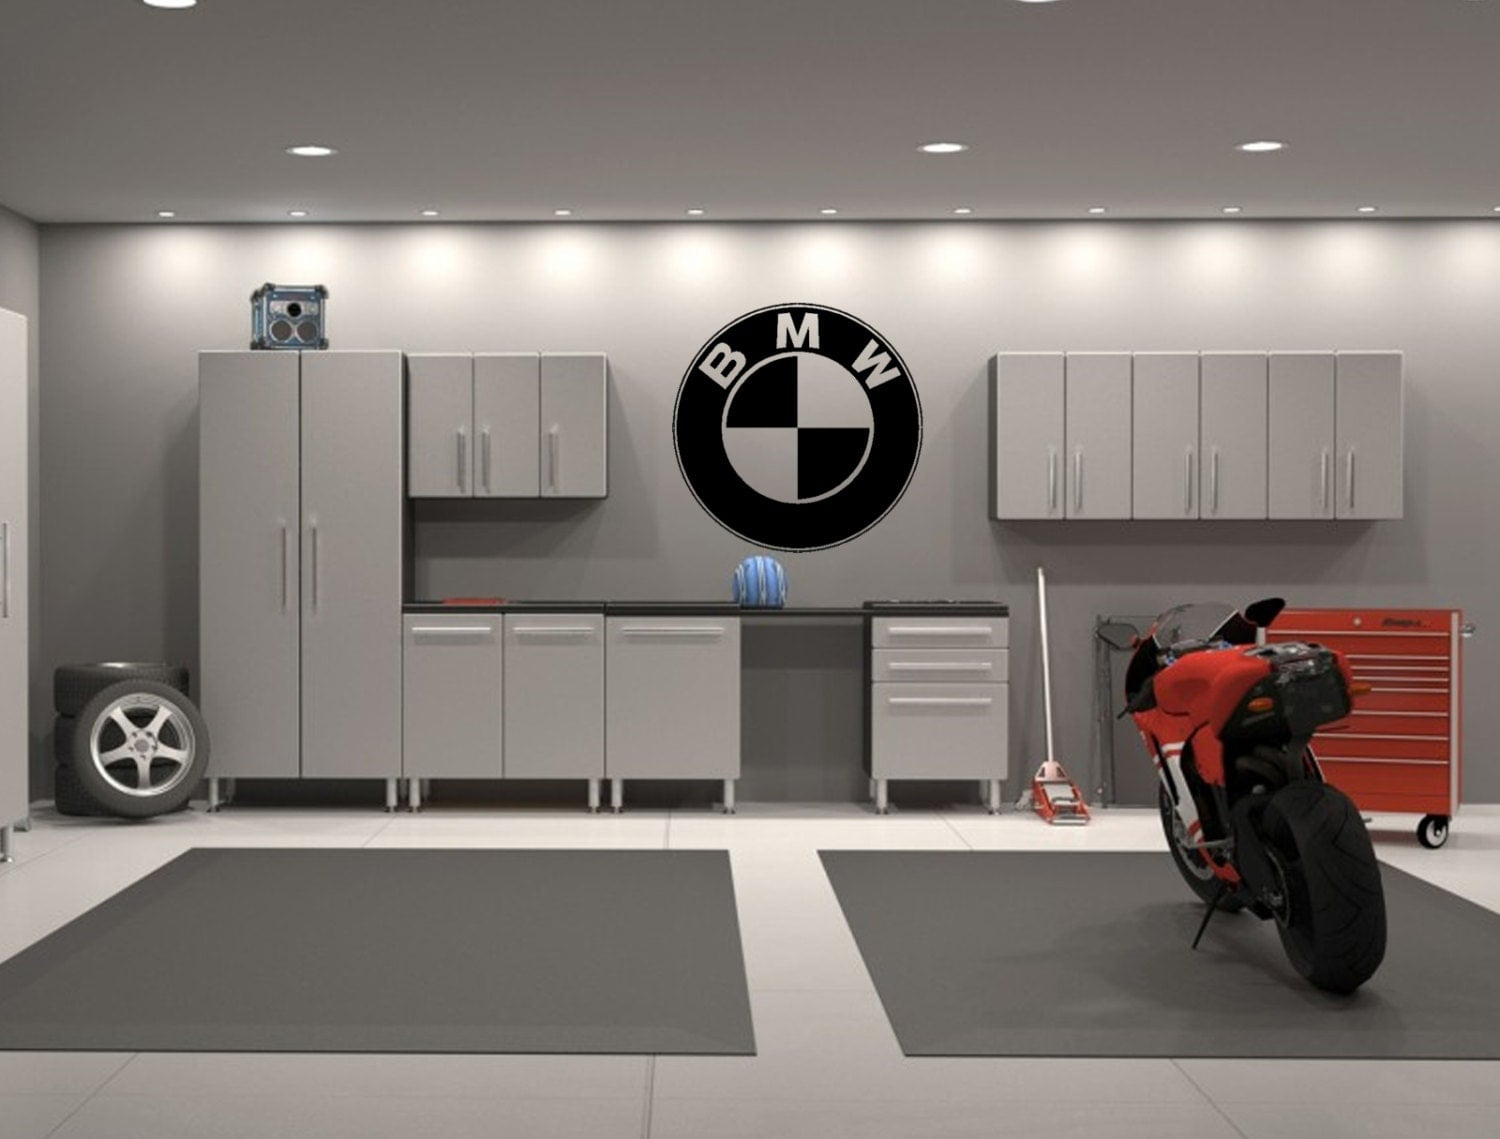 bmw emblem garage interior wall decal sticker. Black Bedroom Furniture Sets. Home Design Ideas